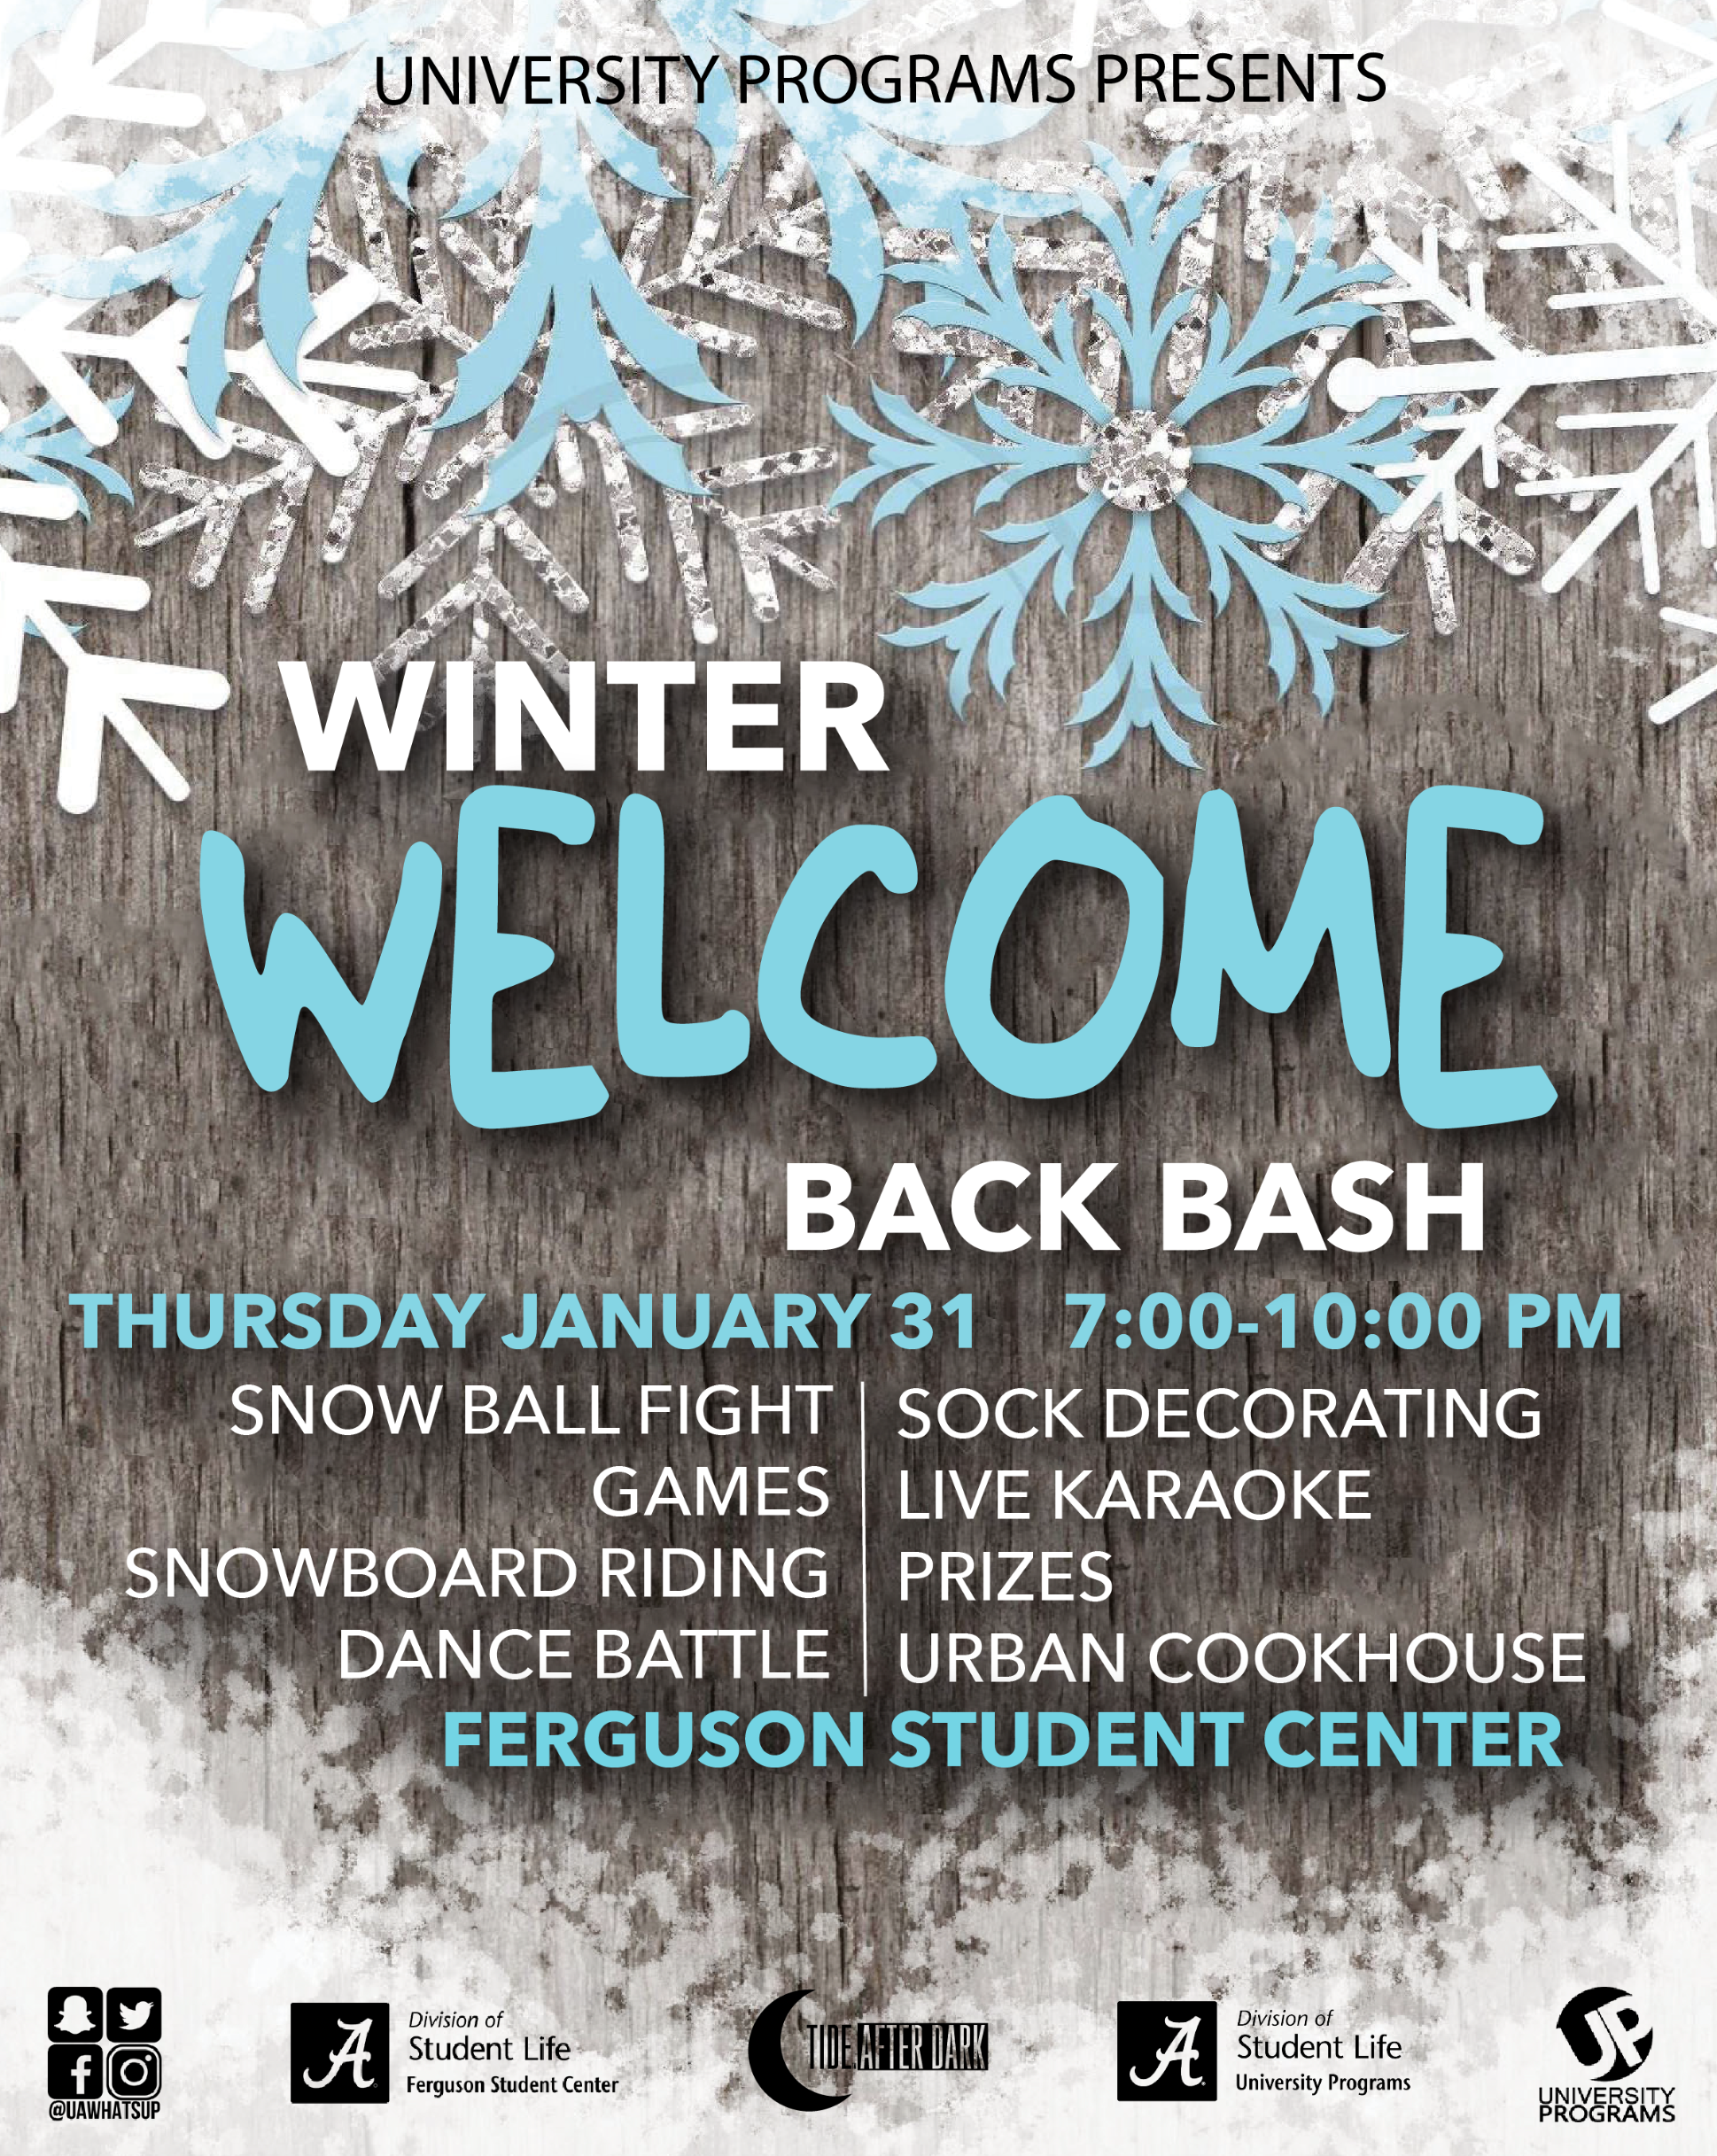 Winter Welcome Back Bash University Programs